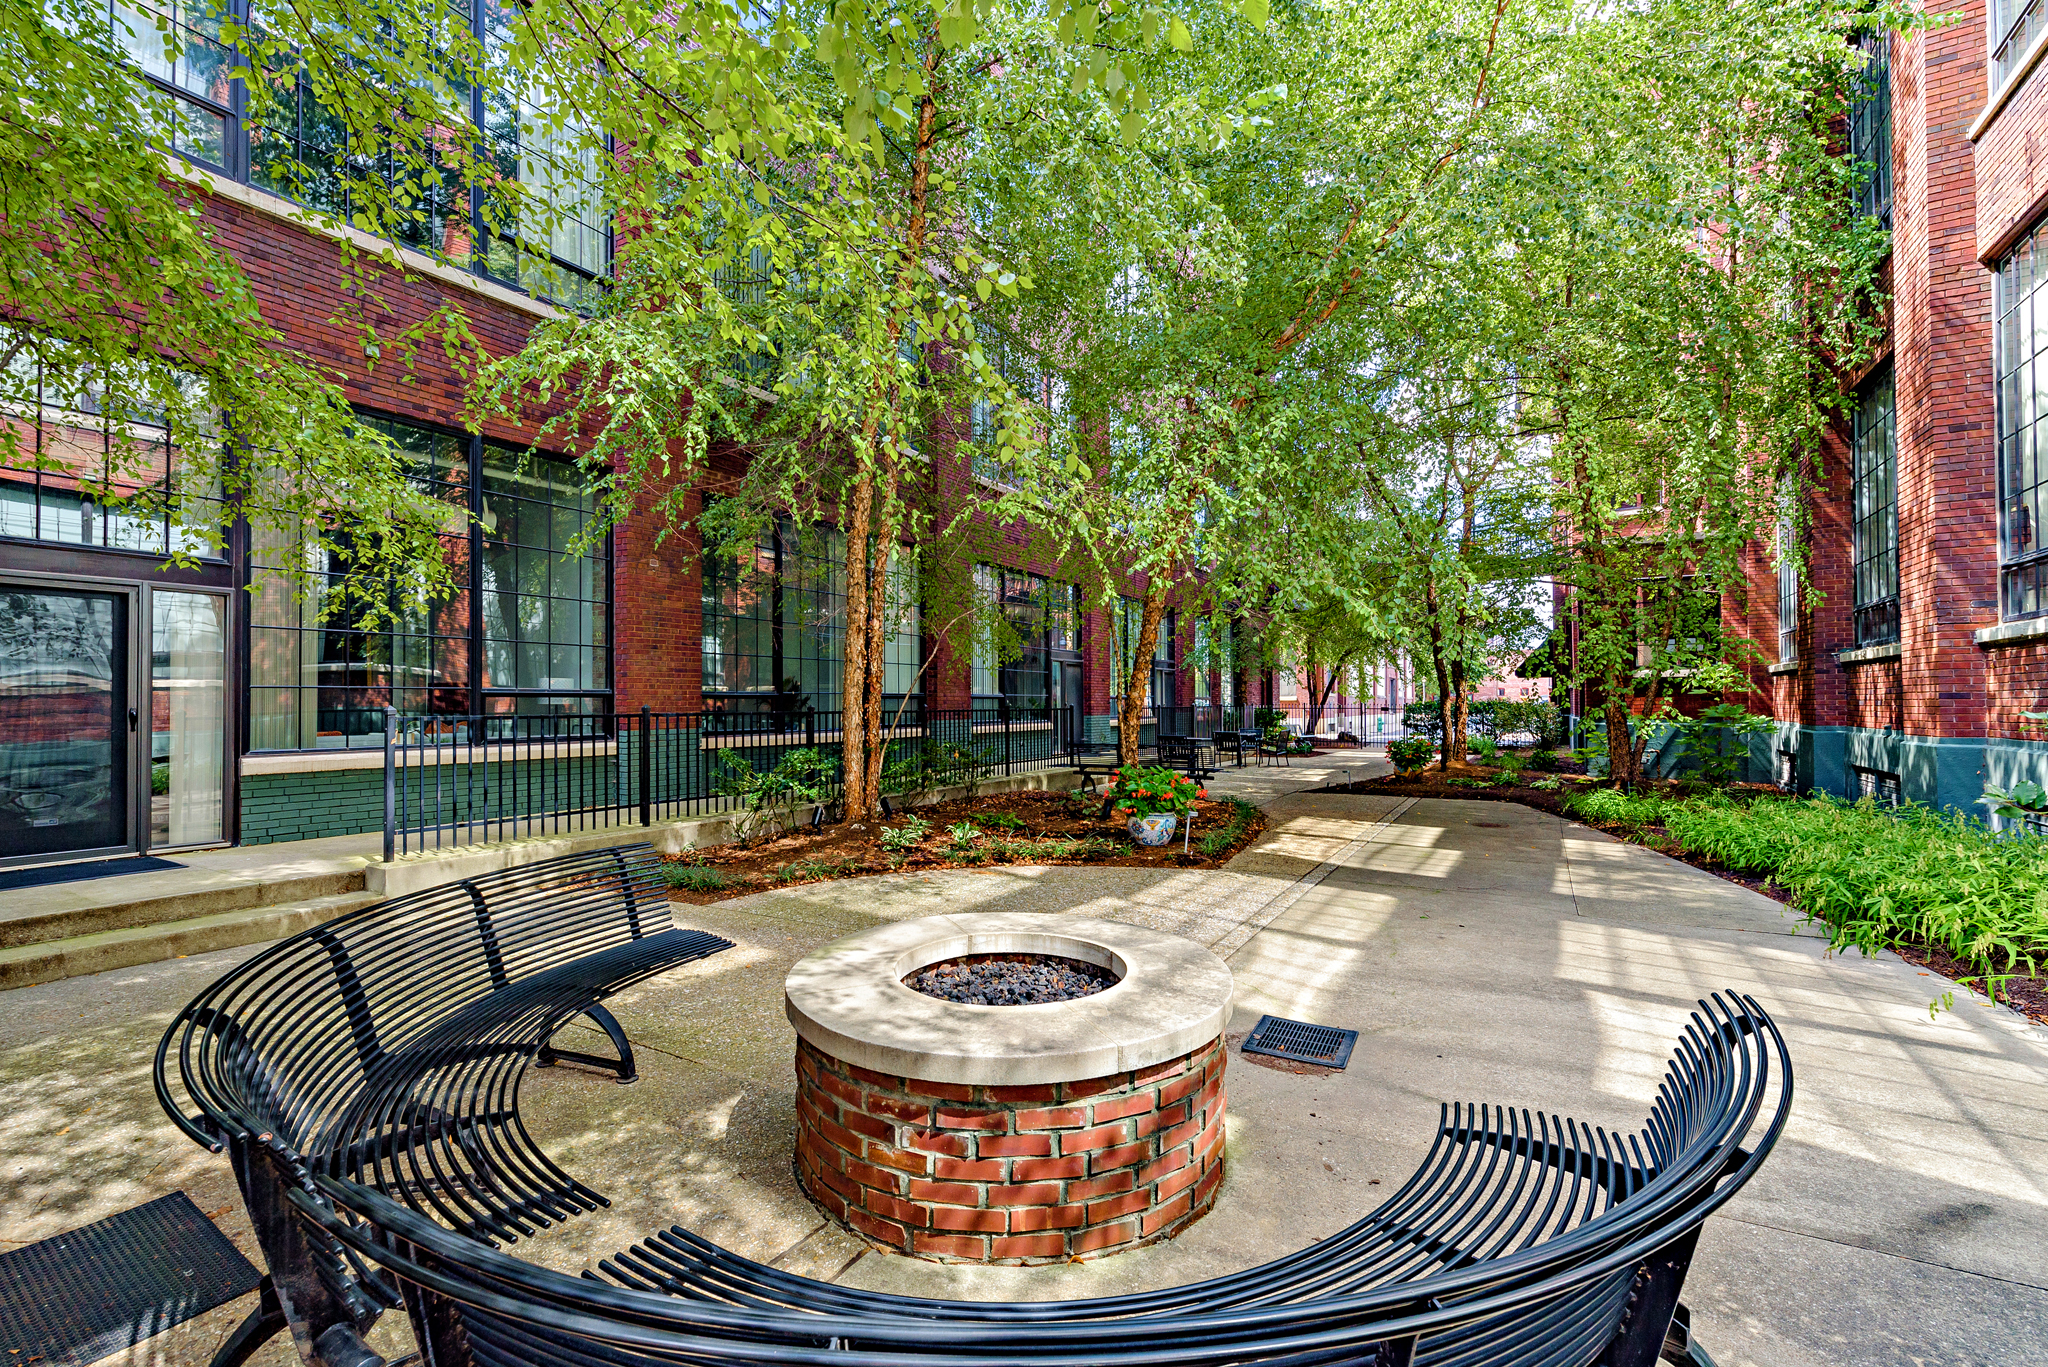 624 E Walnut Condo 46 Indpls IN 46204 Mill 9 Phase 1 - Mitch Rolsky with City Homes And Lifestyle (1 ffff)